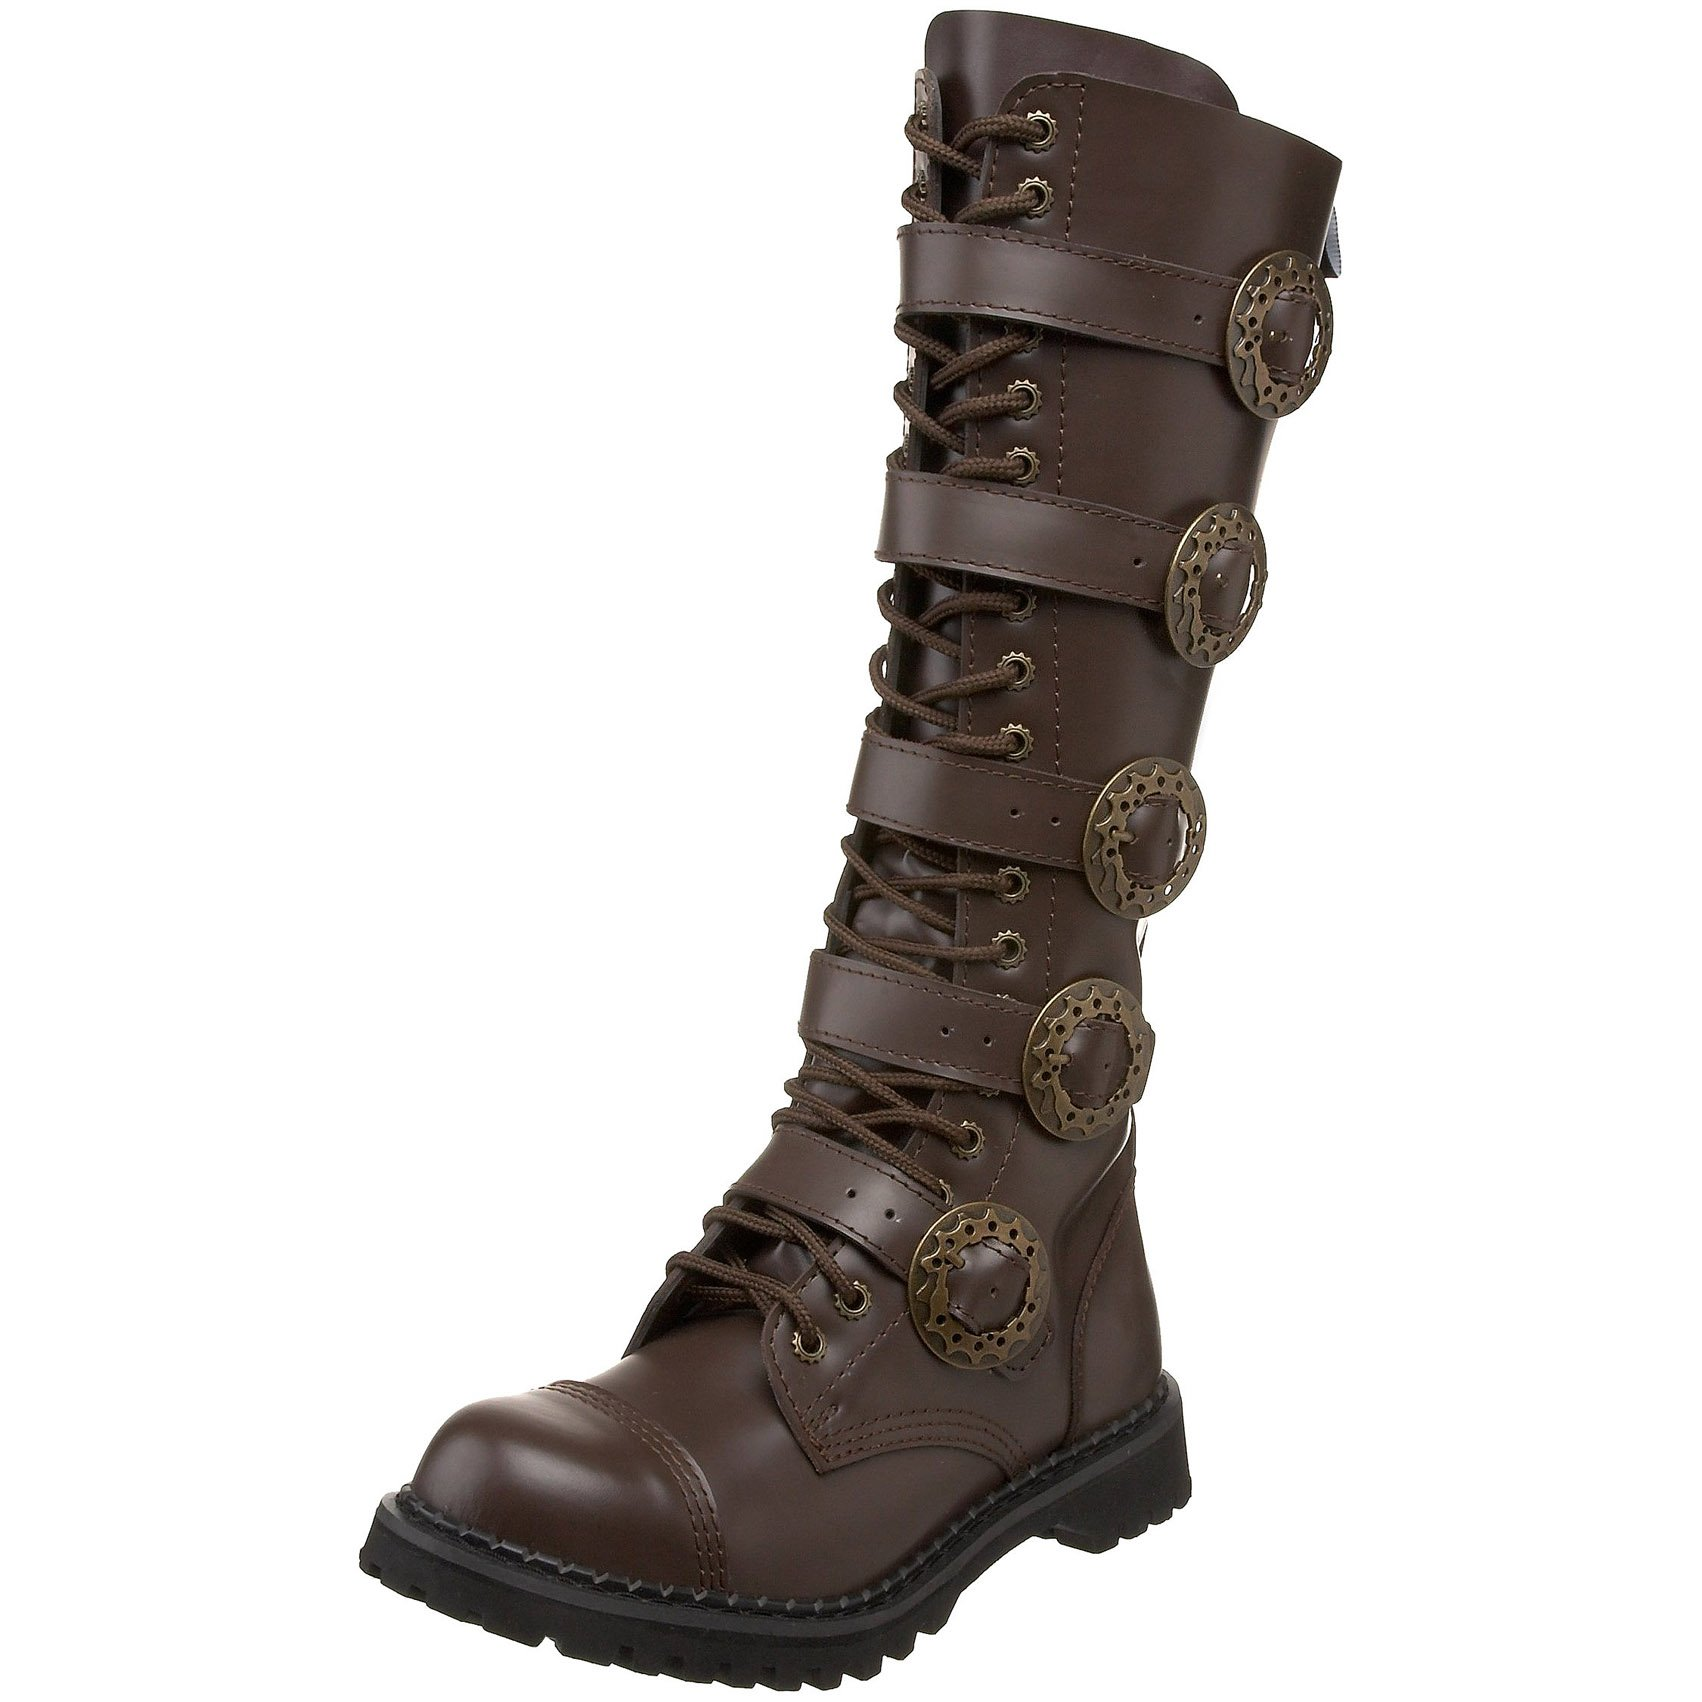 MENS SIZING Knee High Boots Brown Combat Boots Steampunk Hardware Size: 4